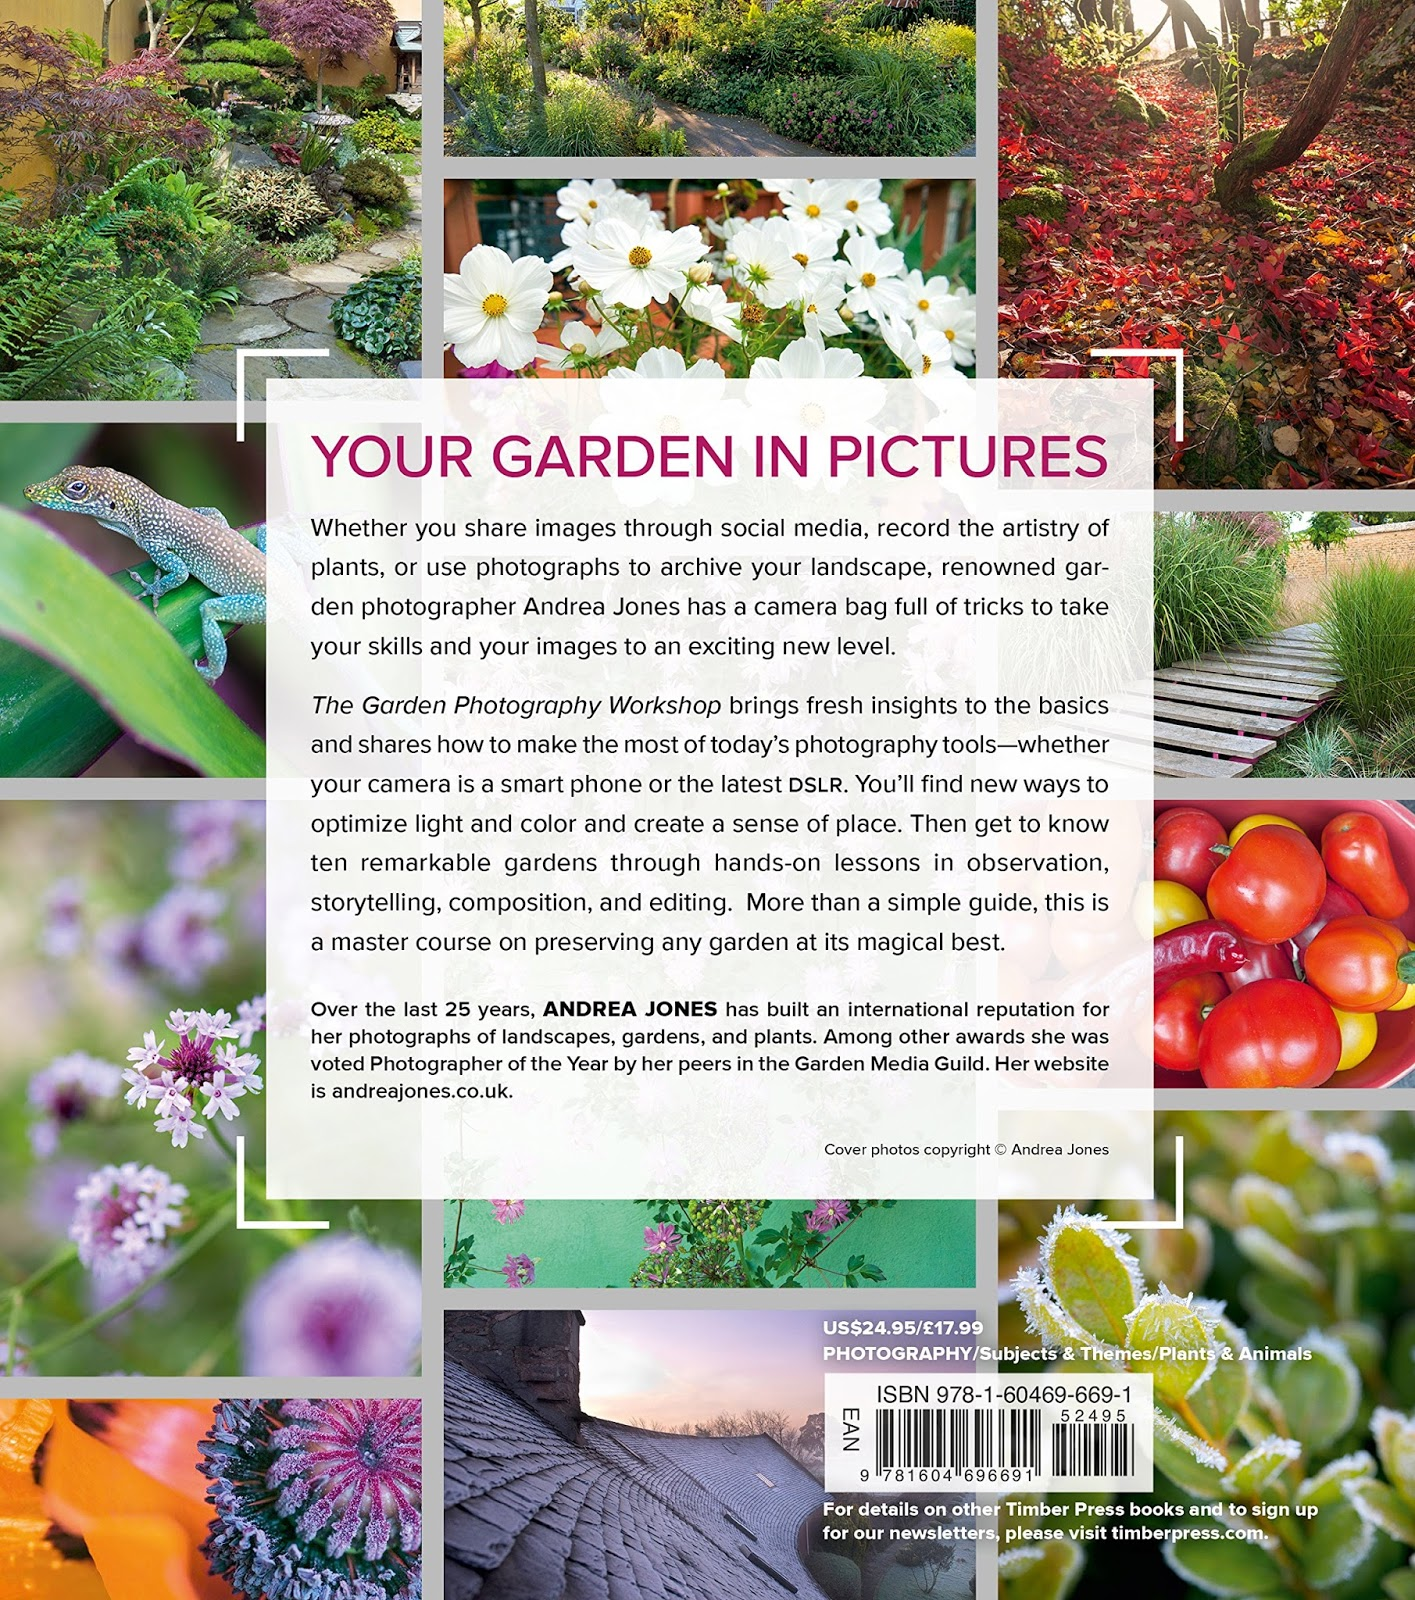 The Author, Scotland Based Andrea Jones, Is Both A Long Time Gardener And A  Renowned Garden Photographer Whose Assignments Have Taken Her Around The  World.